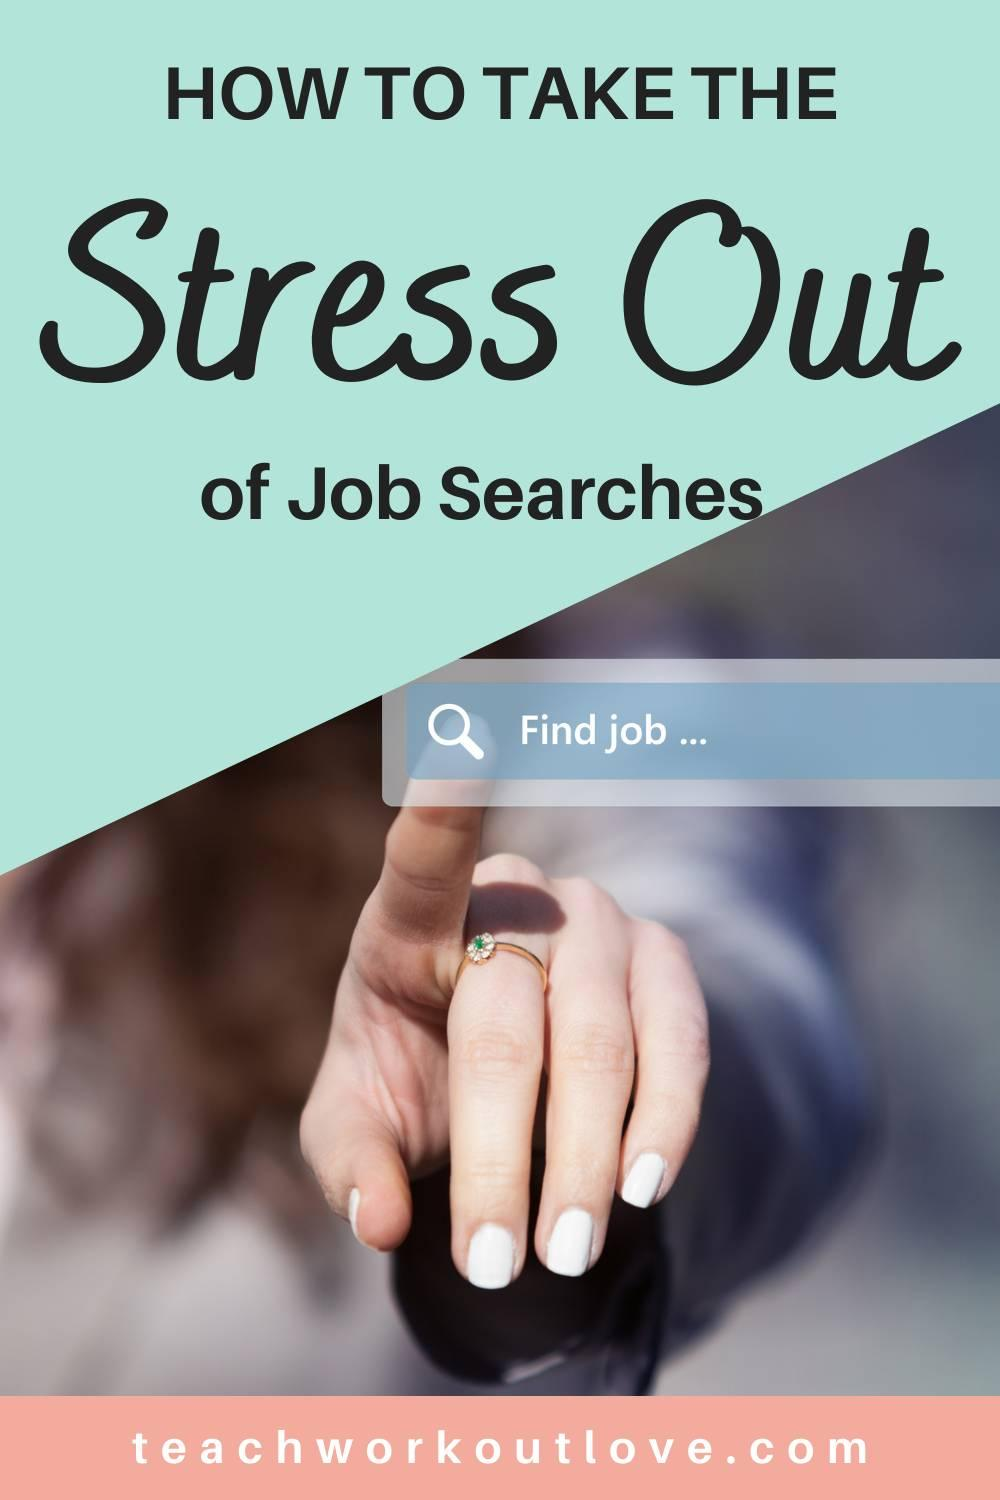 The search for a job can usually be stressful, which can bring about job search stress. Learn how to How To Take The Stress Out Of The Job Search.